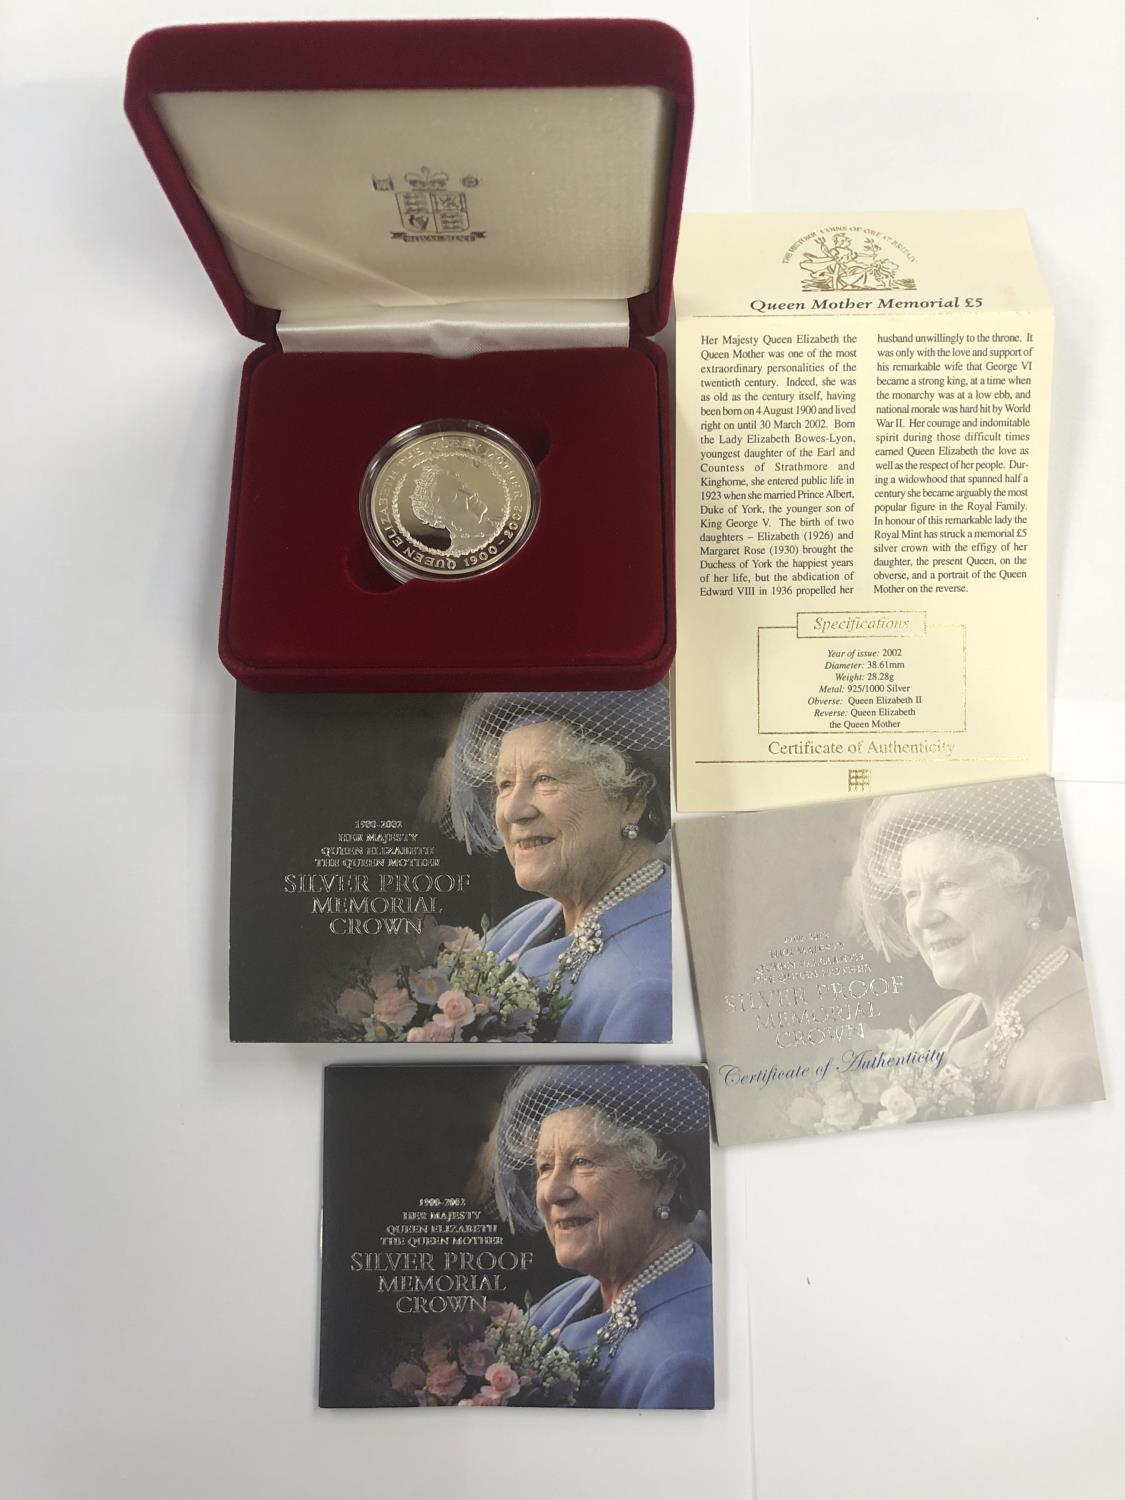 Lot 522 - ROYAL MINT 2002 ?1900-2002 HM QE THE QUEEN MOTHER? SILVER PROOF MEMORIAL CROWN , PRESENT IN